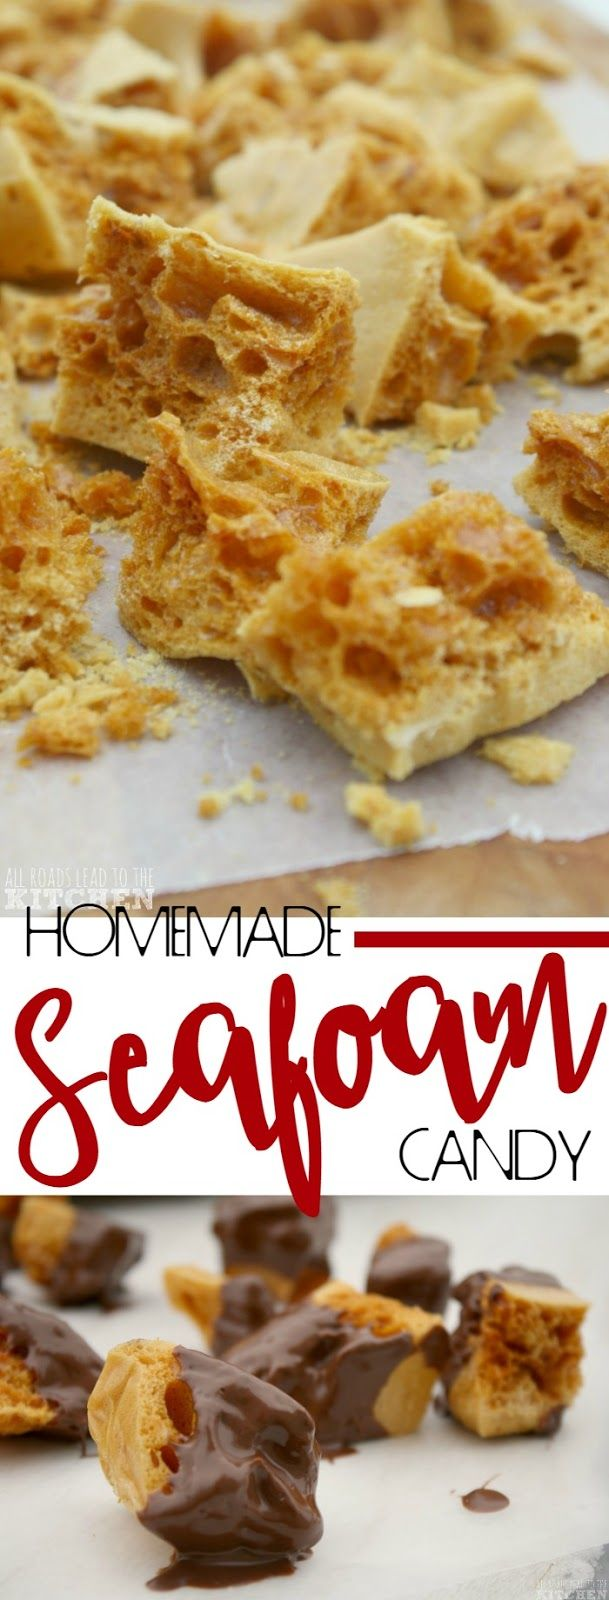 Homemade Seafoam Candy For the seafoam: 2 cups water 2 cups granulated sugar 3 tablespoons corn syrup 2 tablespoons cider vinegar 2 teaspoons pure vanilla extract 1 1/2 teaspoons sifted baking soda